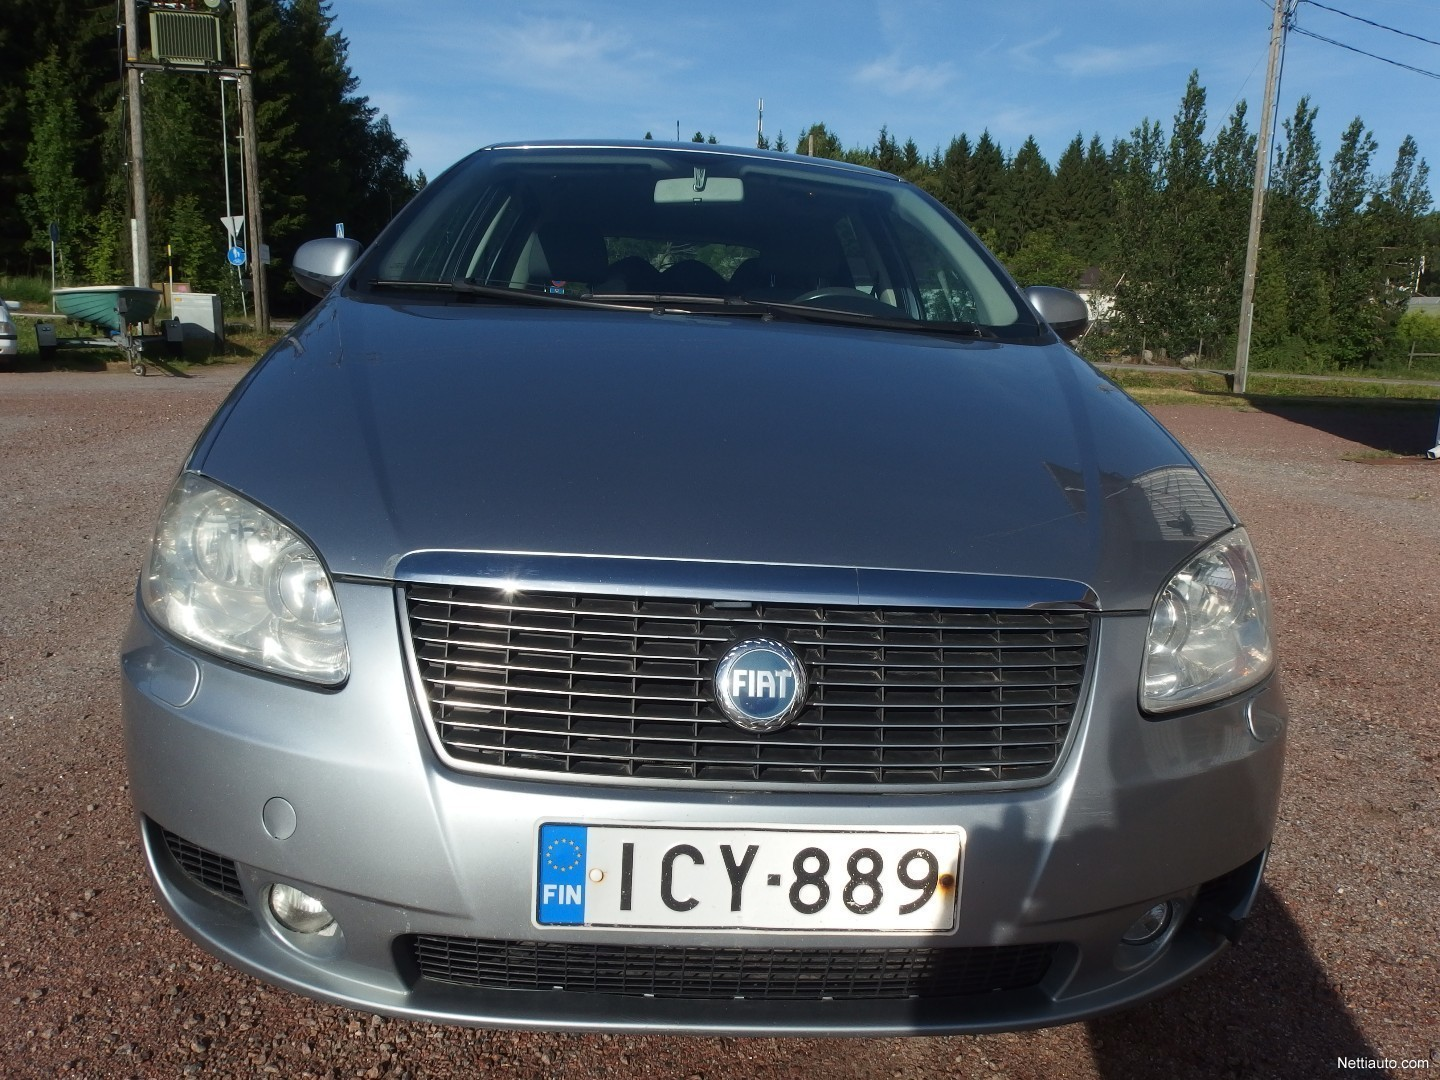 Add to Compare. Enlarge image. Fiat Croma